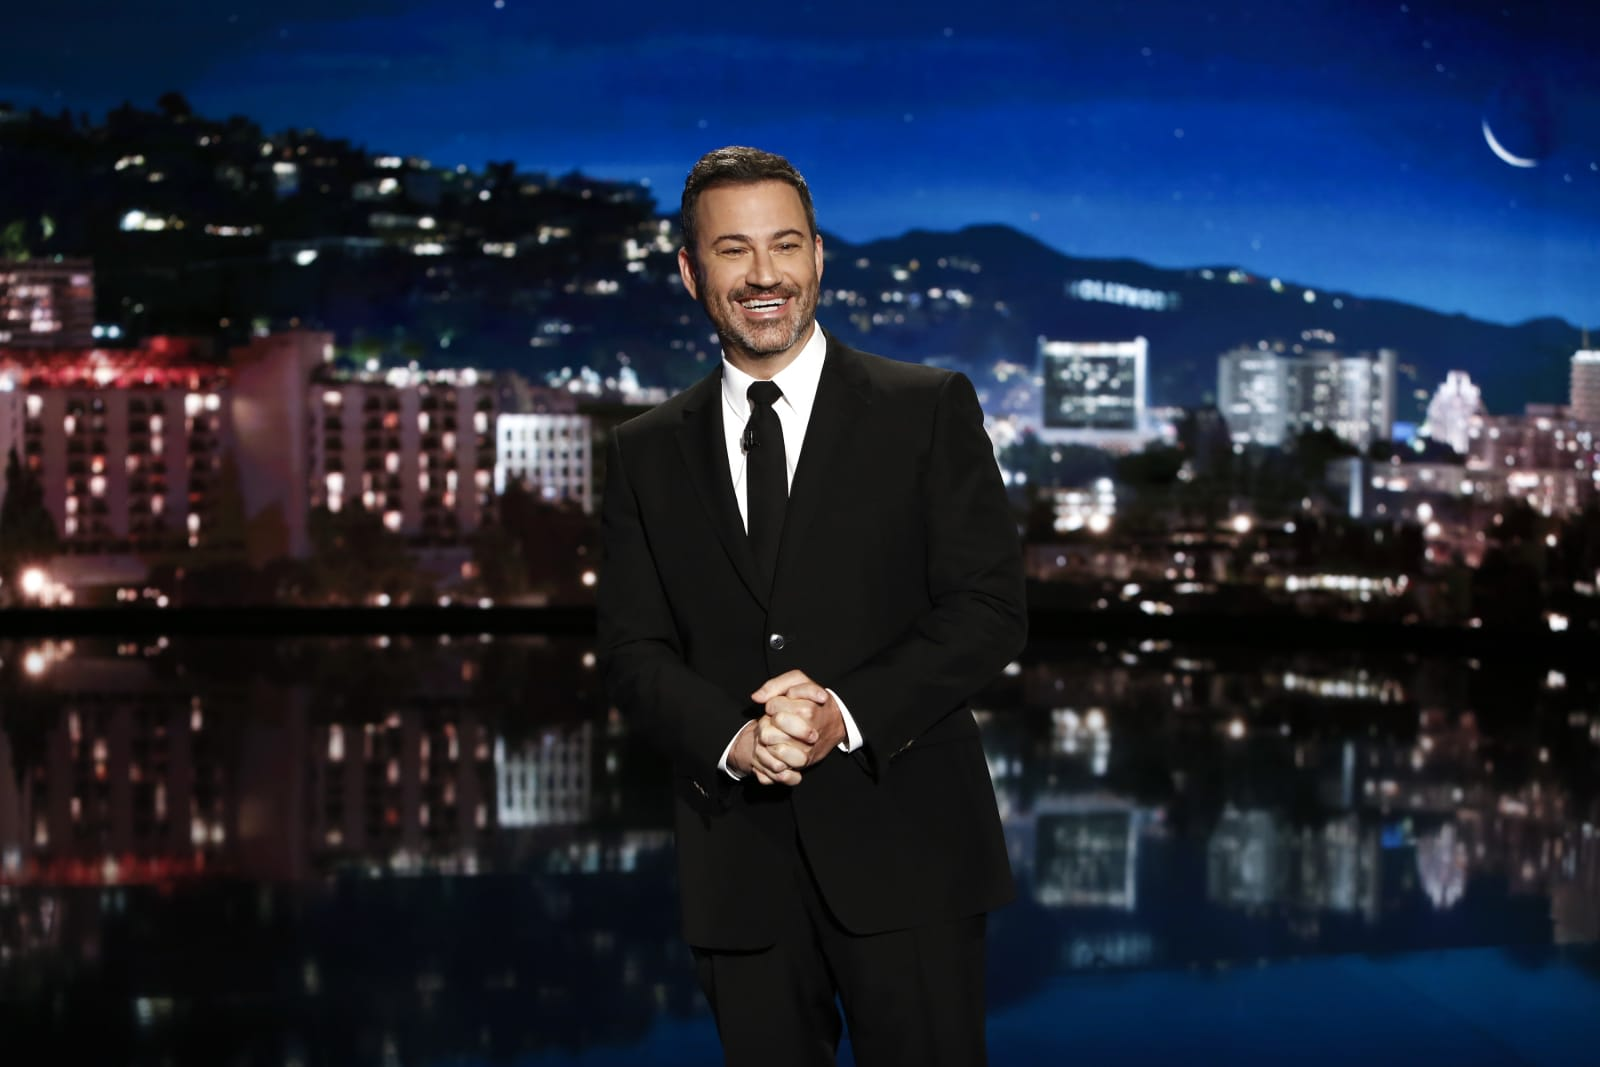 'Jimmy Kimmel Live' fined $395,000 for using emergency alert tones